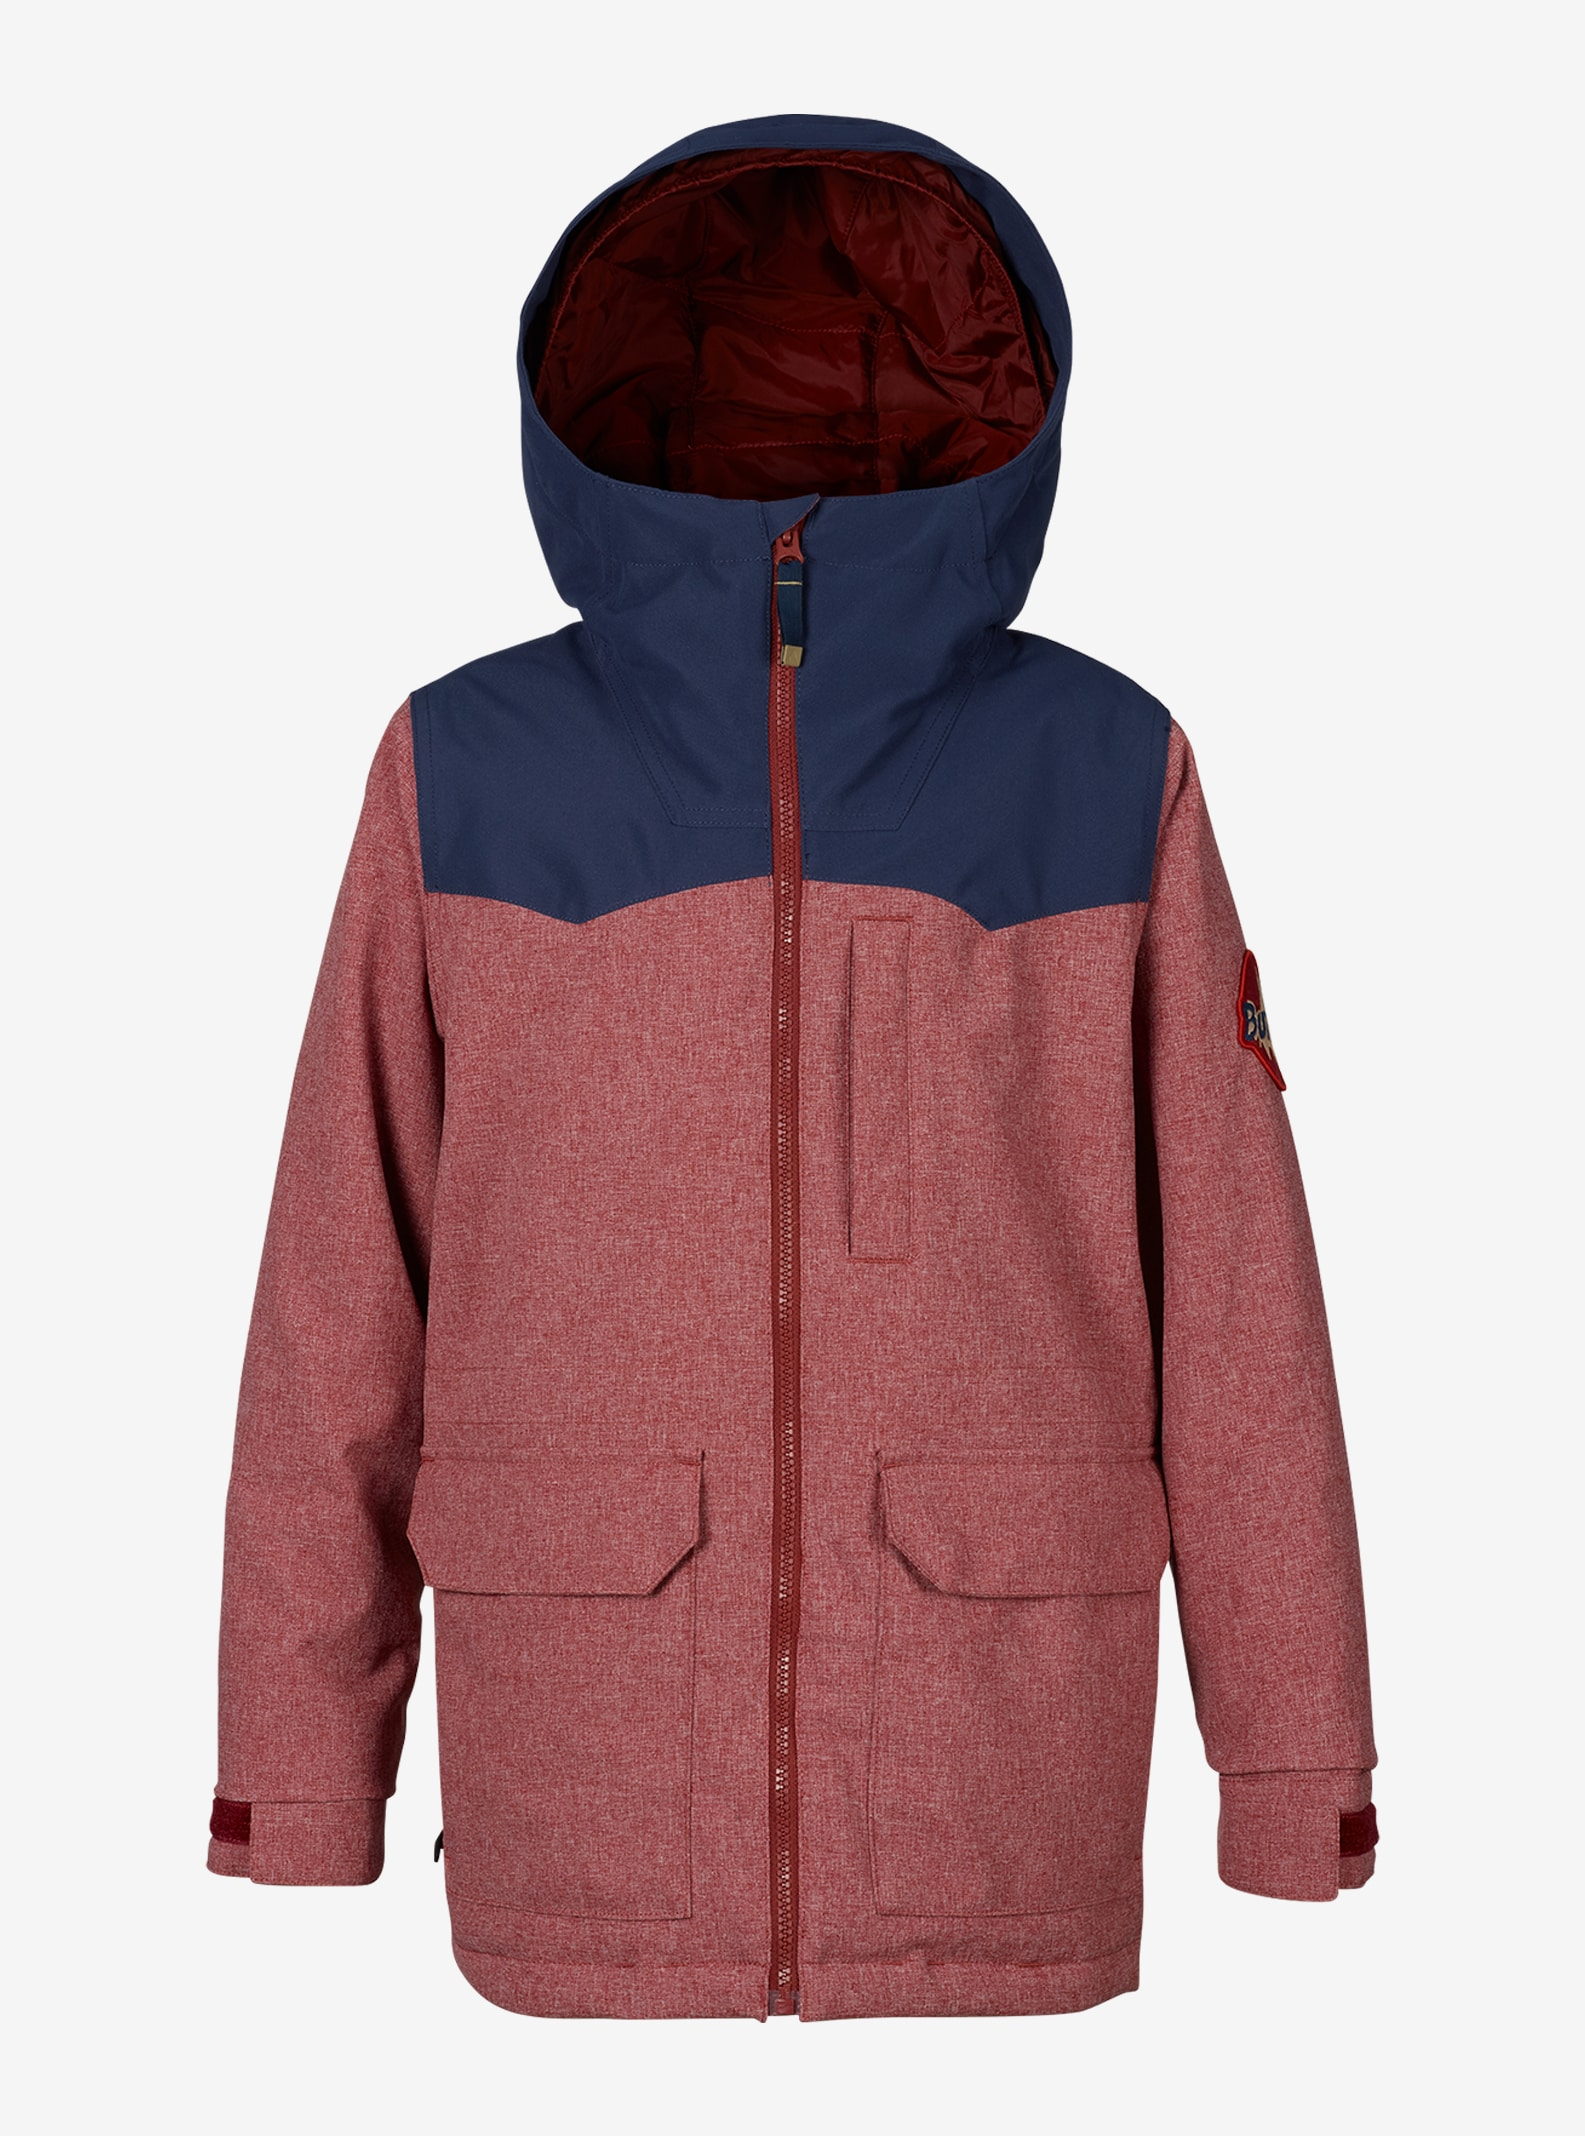 Boys' Burton Phase Jacket shown in Fired Brick / Mood Indigo